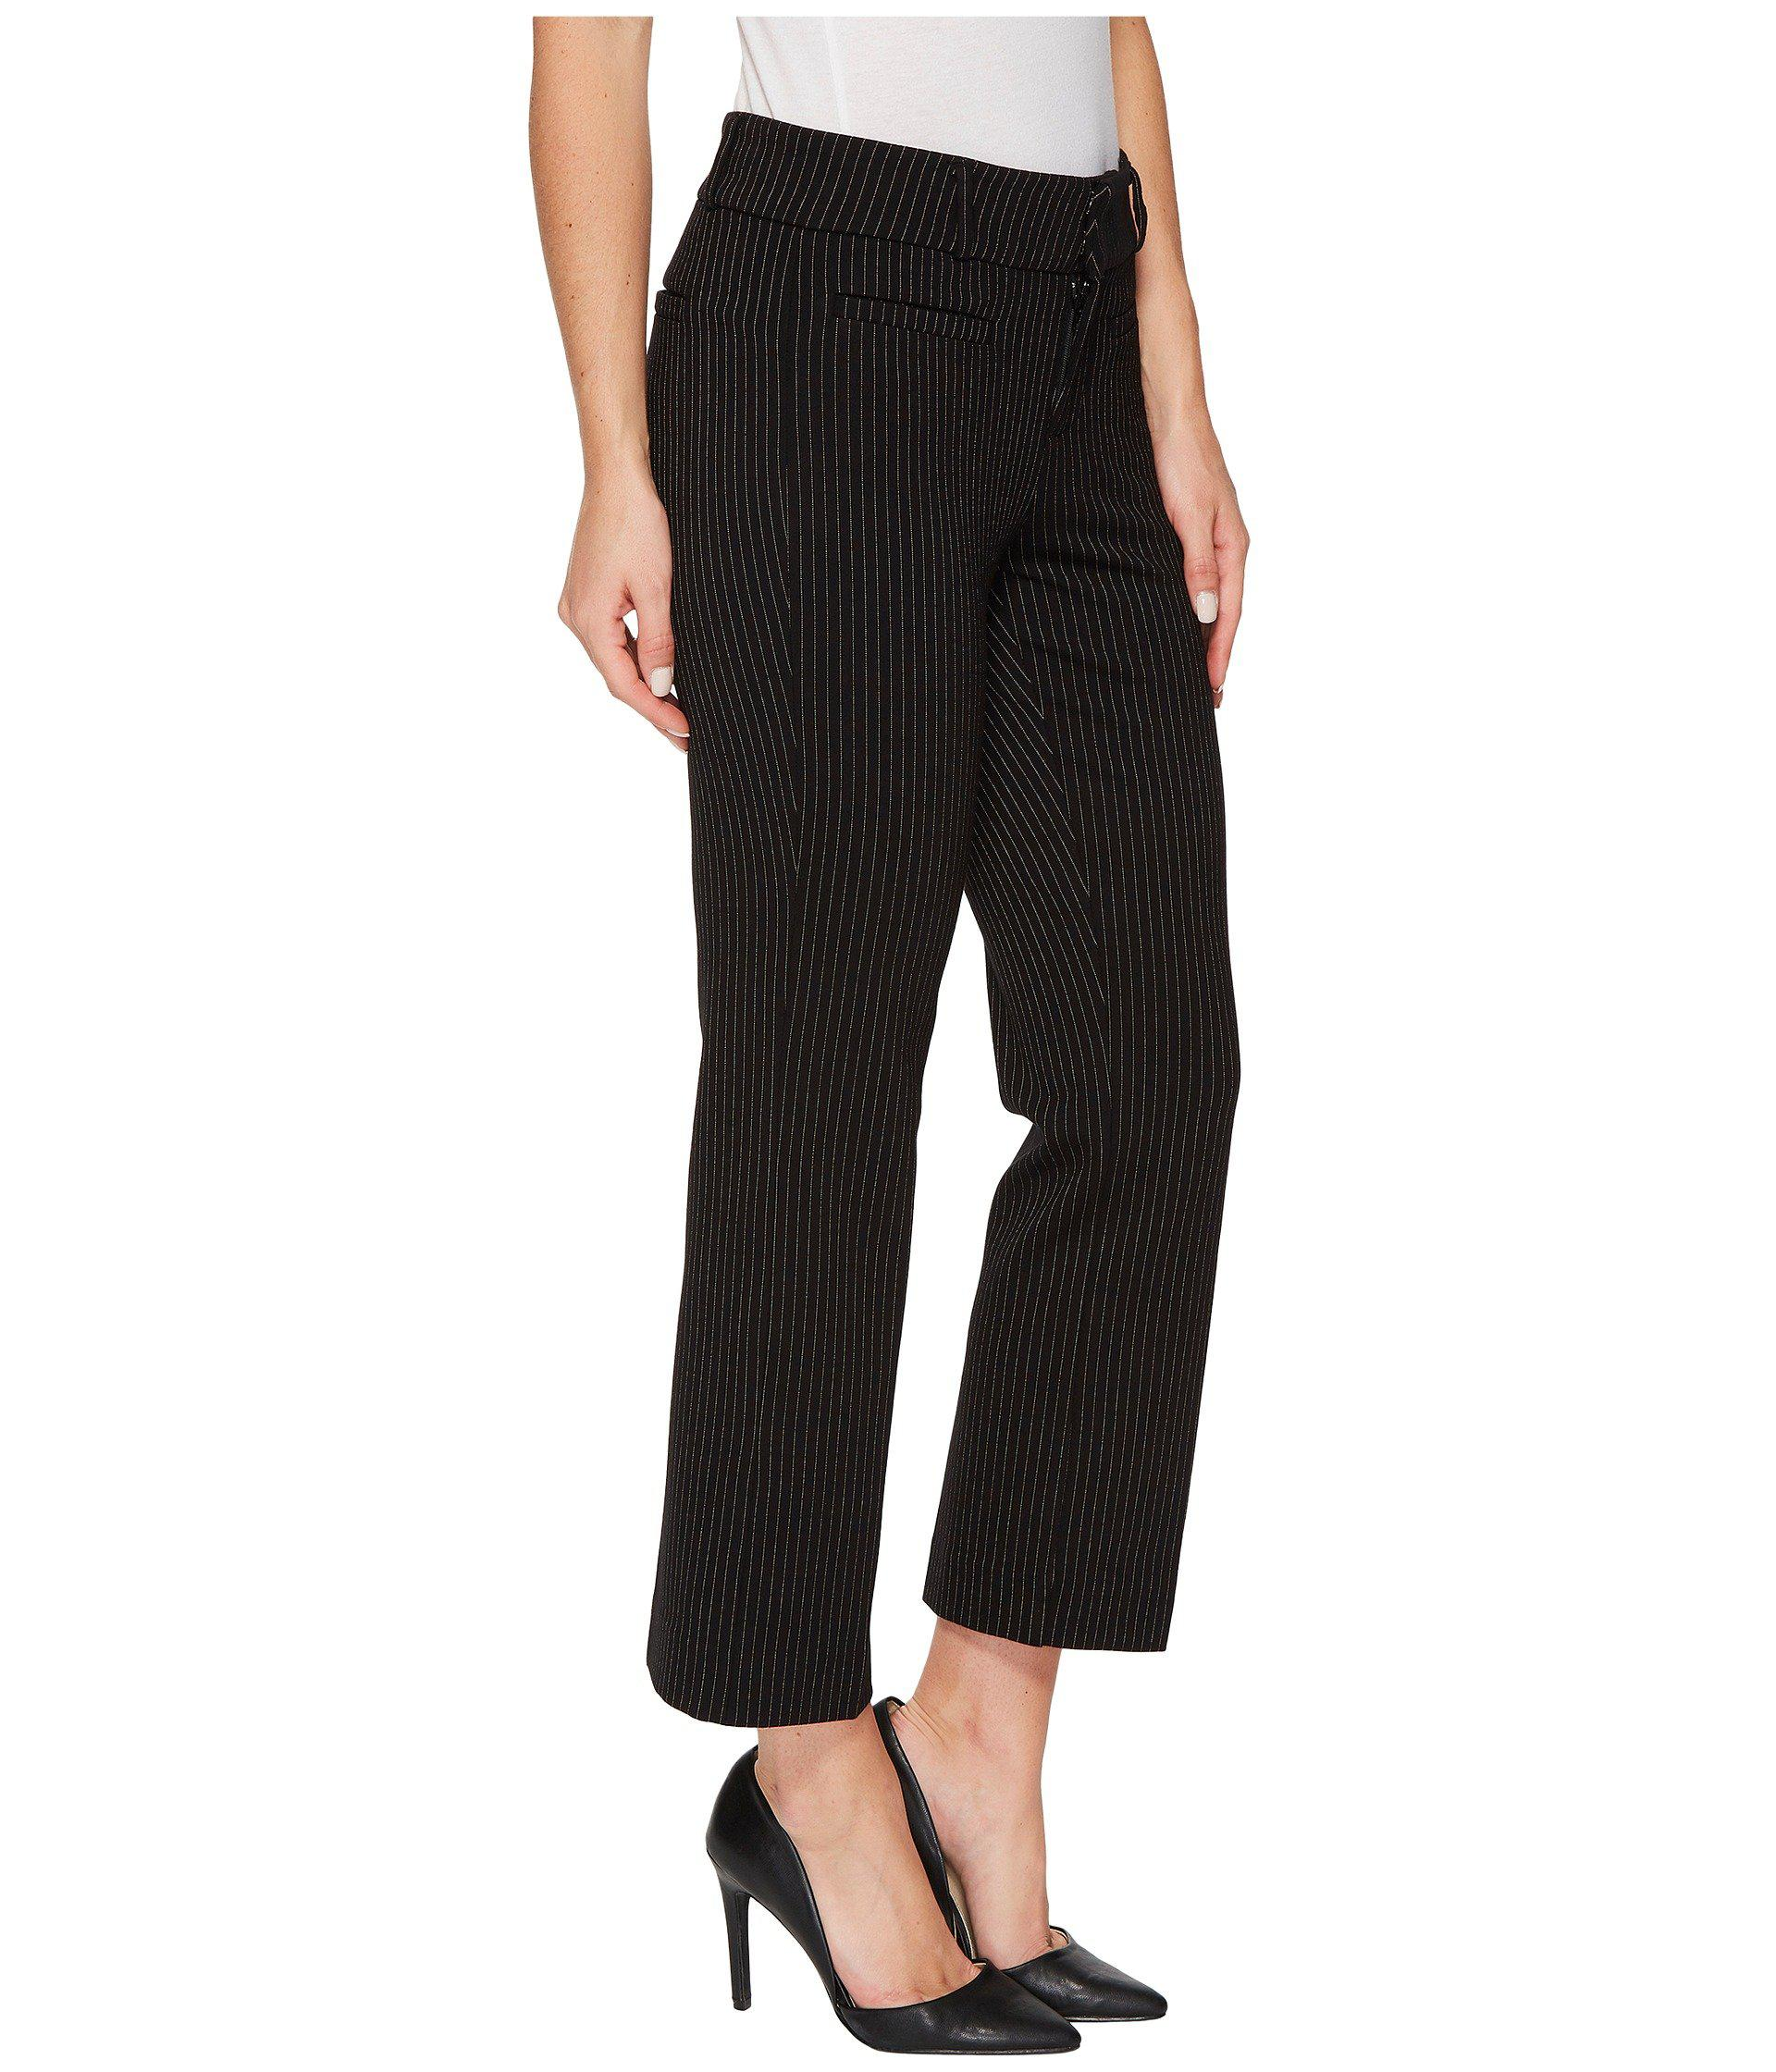 a31ee4905afbc Liverpool Jeans Company Vera Crop Flare Trousers With Welt Pockets ...